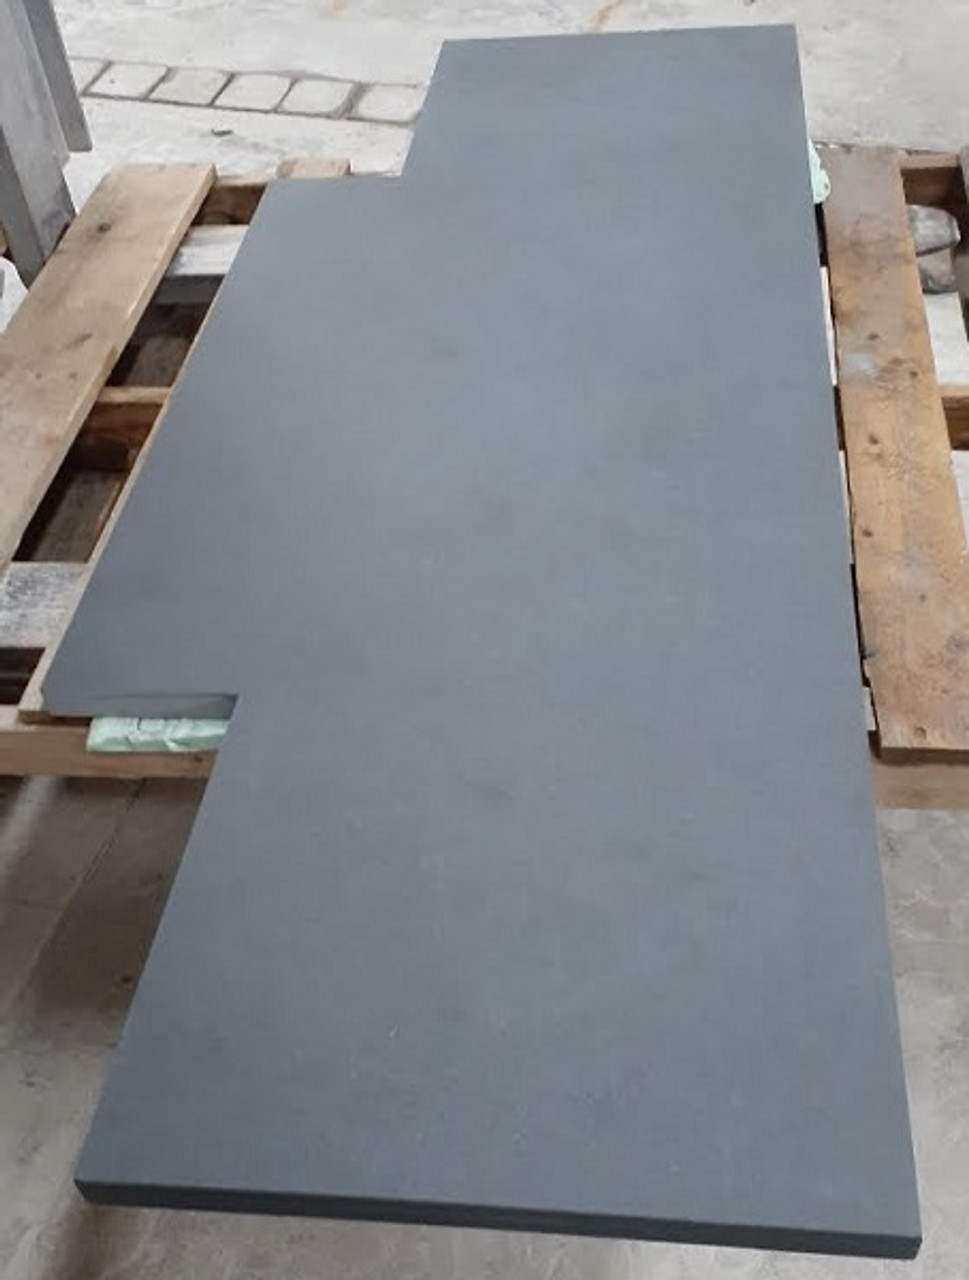 Black slate fireplace hearth with natural cleft top cut out for fireplace opening